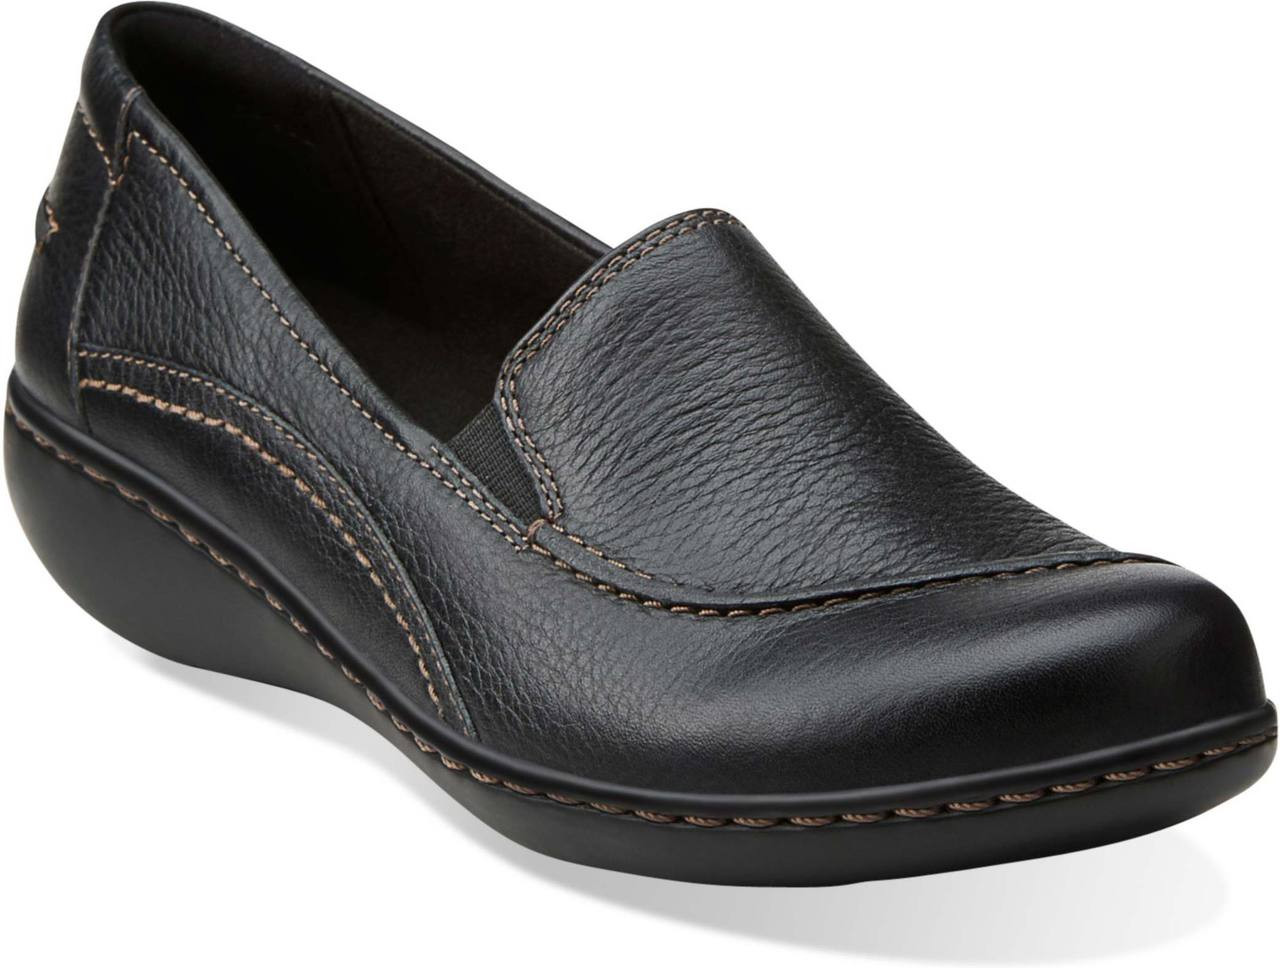 Women's Slip Ons Loafers/Clarks Ashland Violet Navy Tumbled Leather